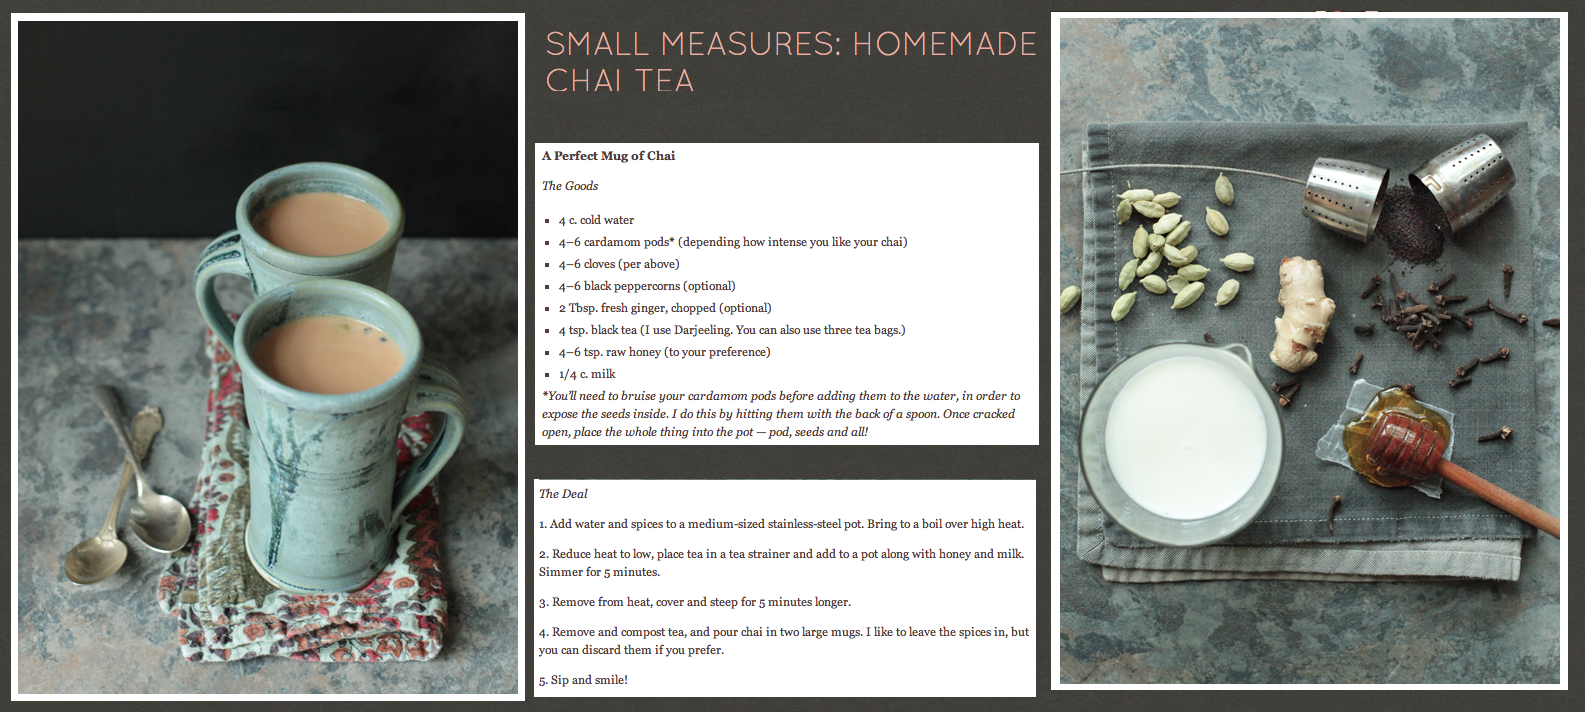 http://www.designsponge.com/2012/10/small-measures-homemade-chai-tea.html#more-153004